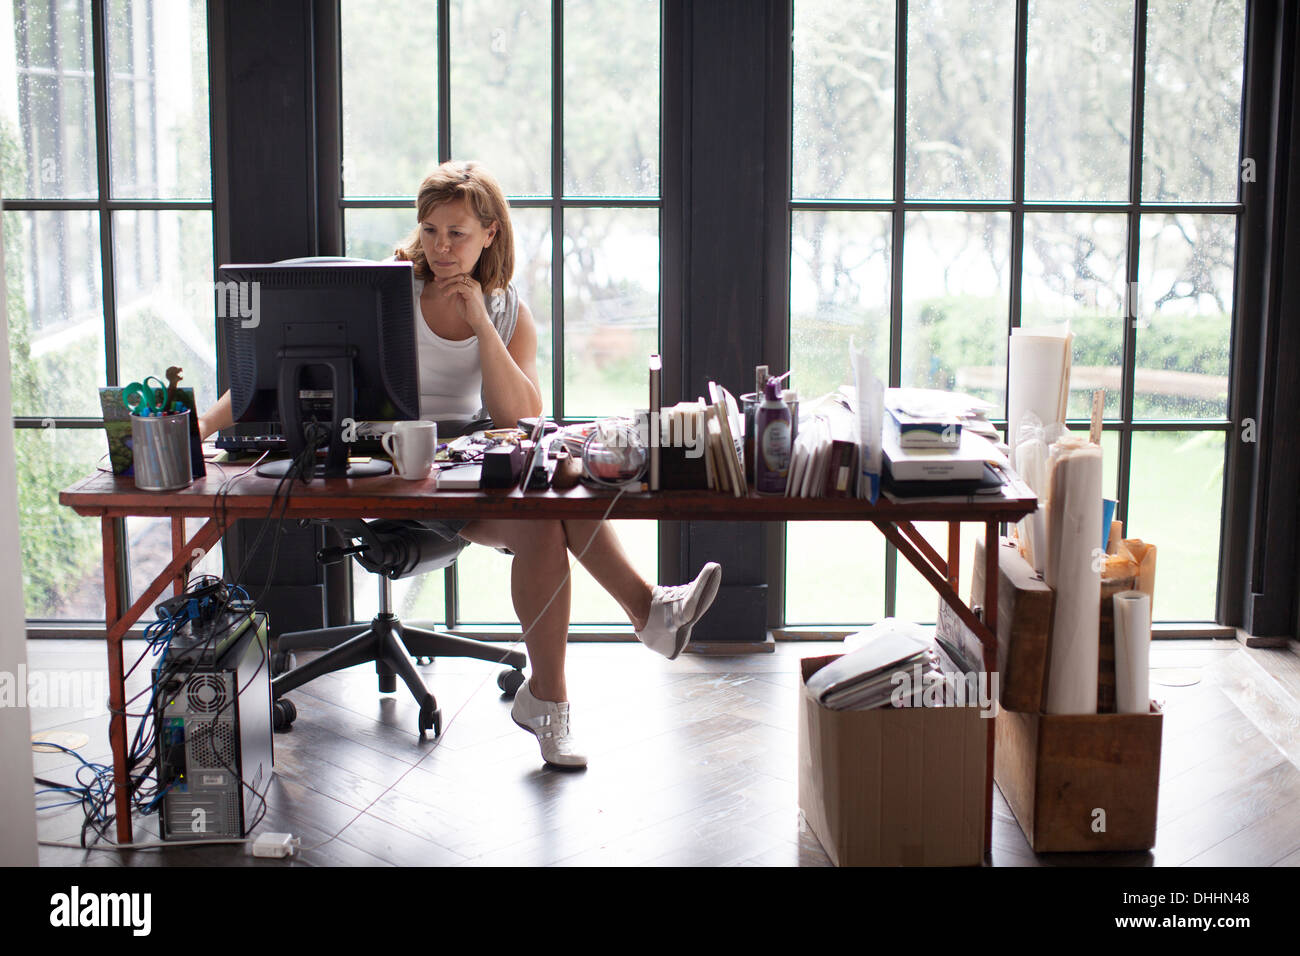 Mature woman at home working on personal computer - Stock Image